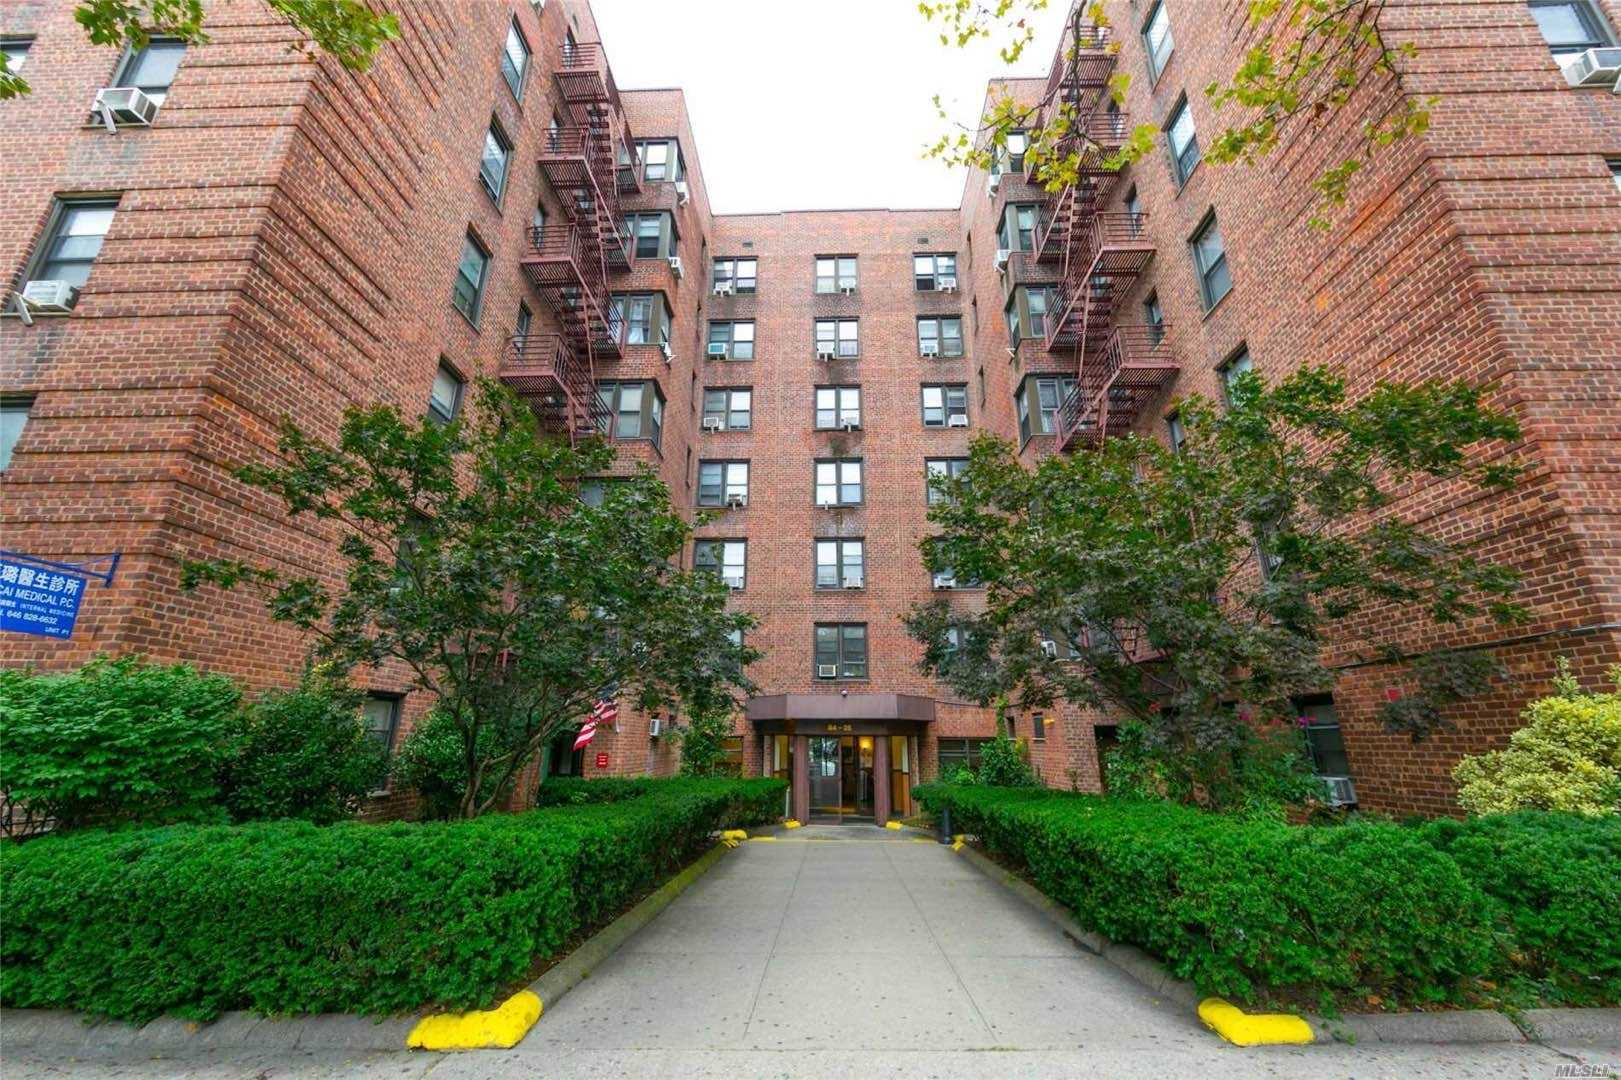 Property for sale at 84-25 Elmhurst Avenue # V, Elmhurst NY 11373, Elmhurst,  New York 11373